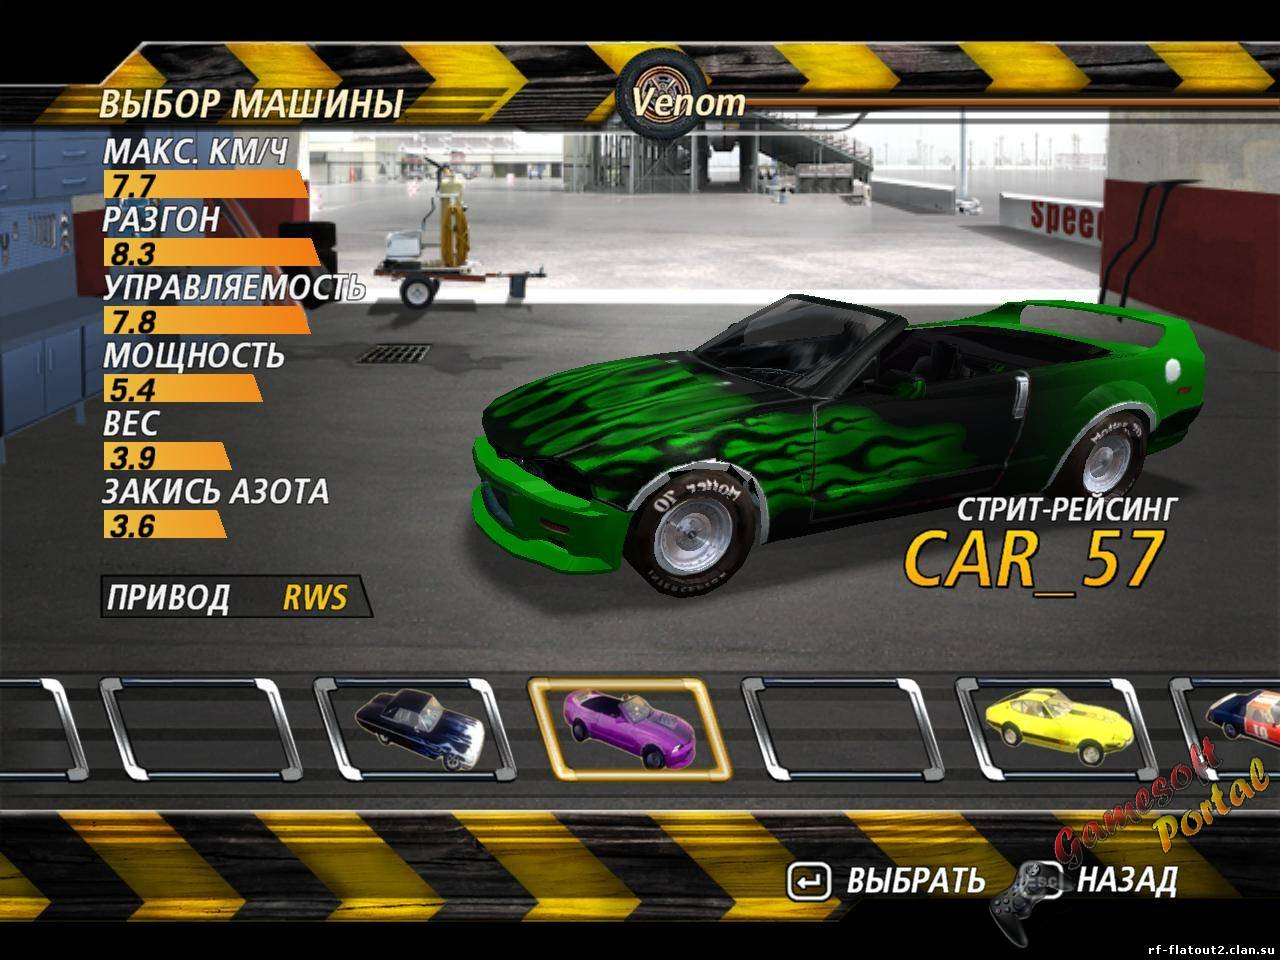 Ford Mustang Cabre для Flatout 2